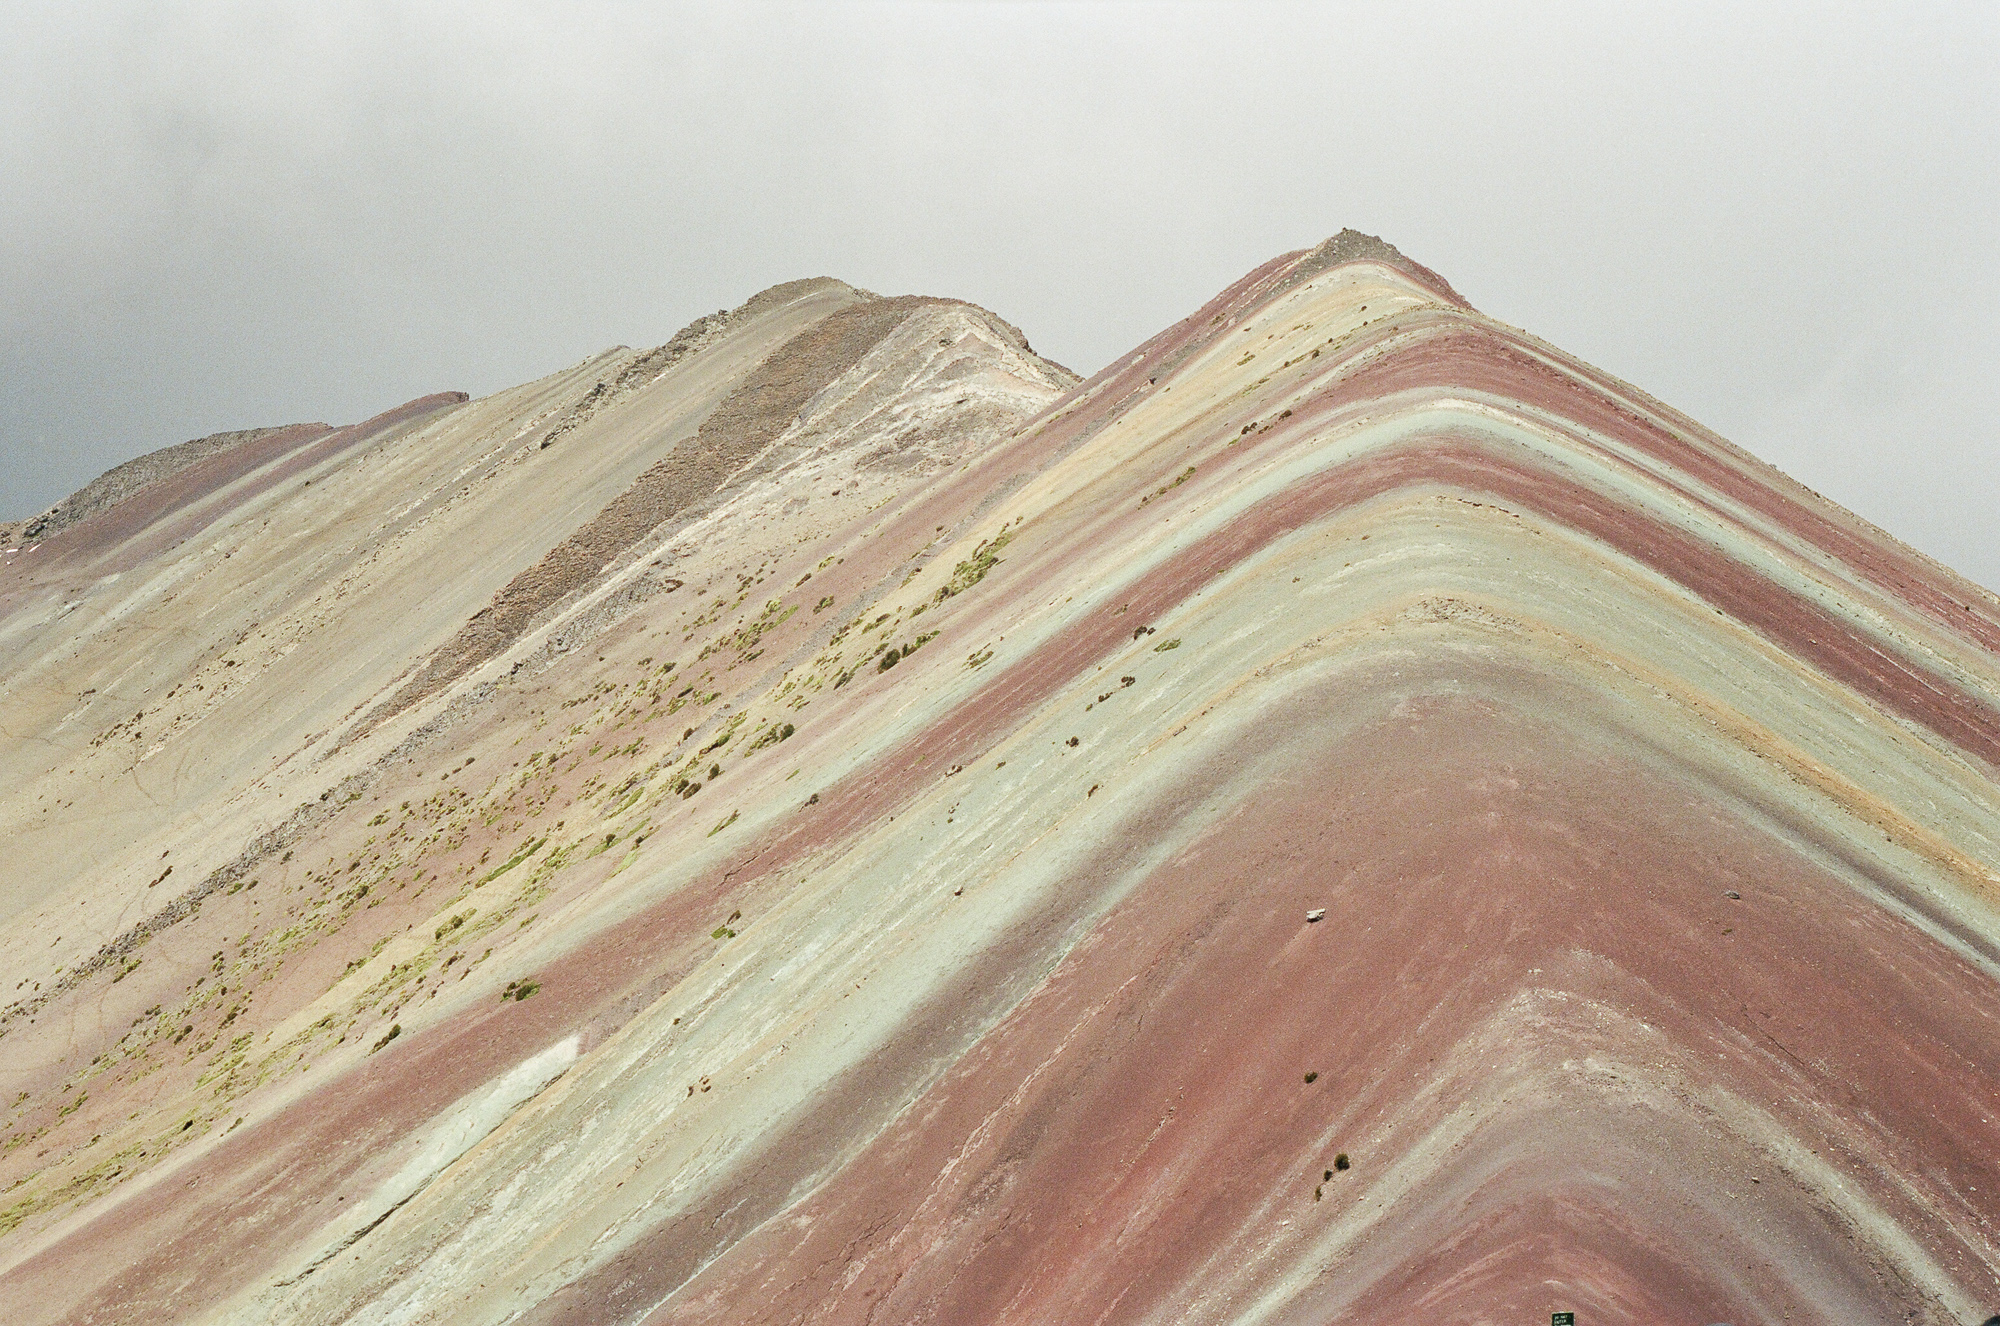 Rainbow Mountain, Peru  March 2018